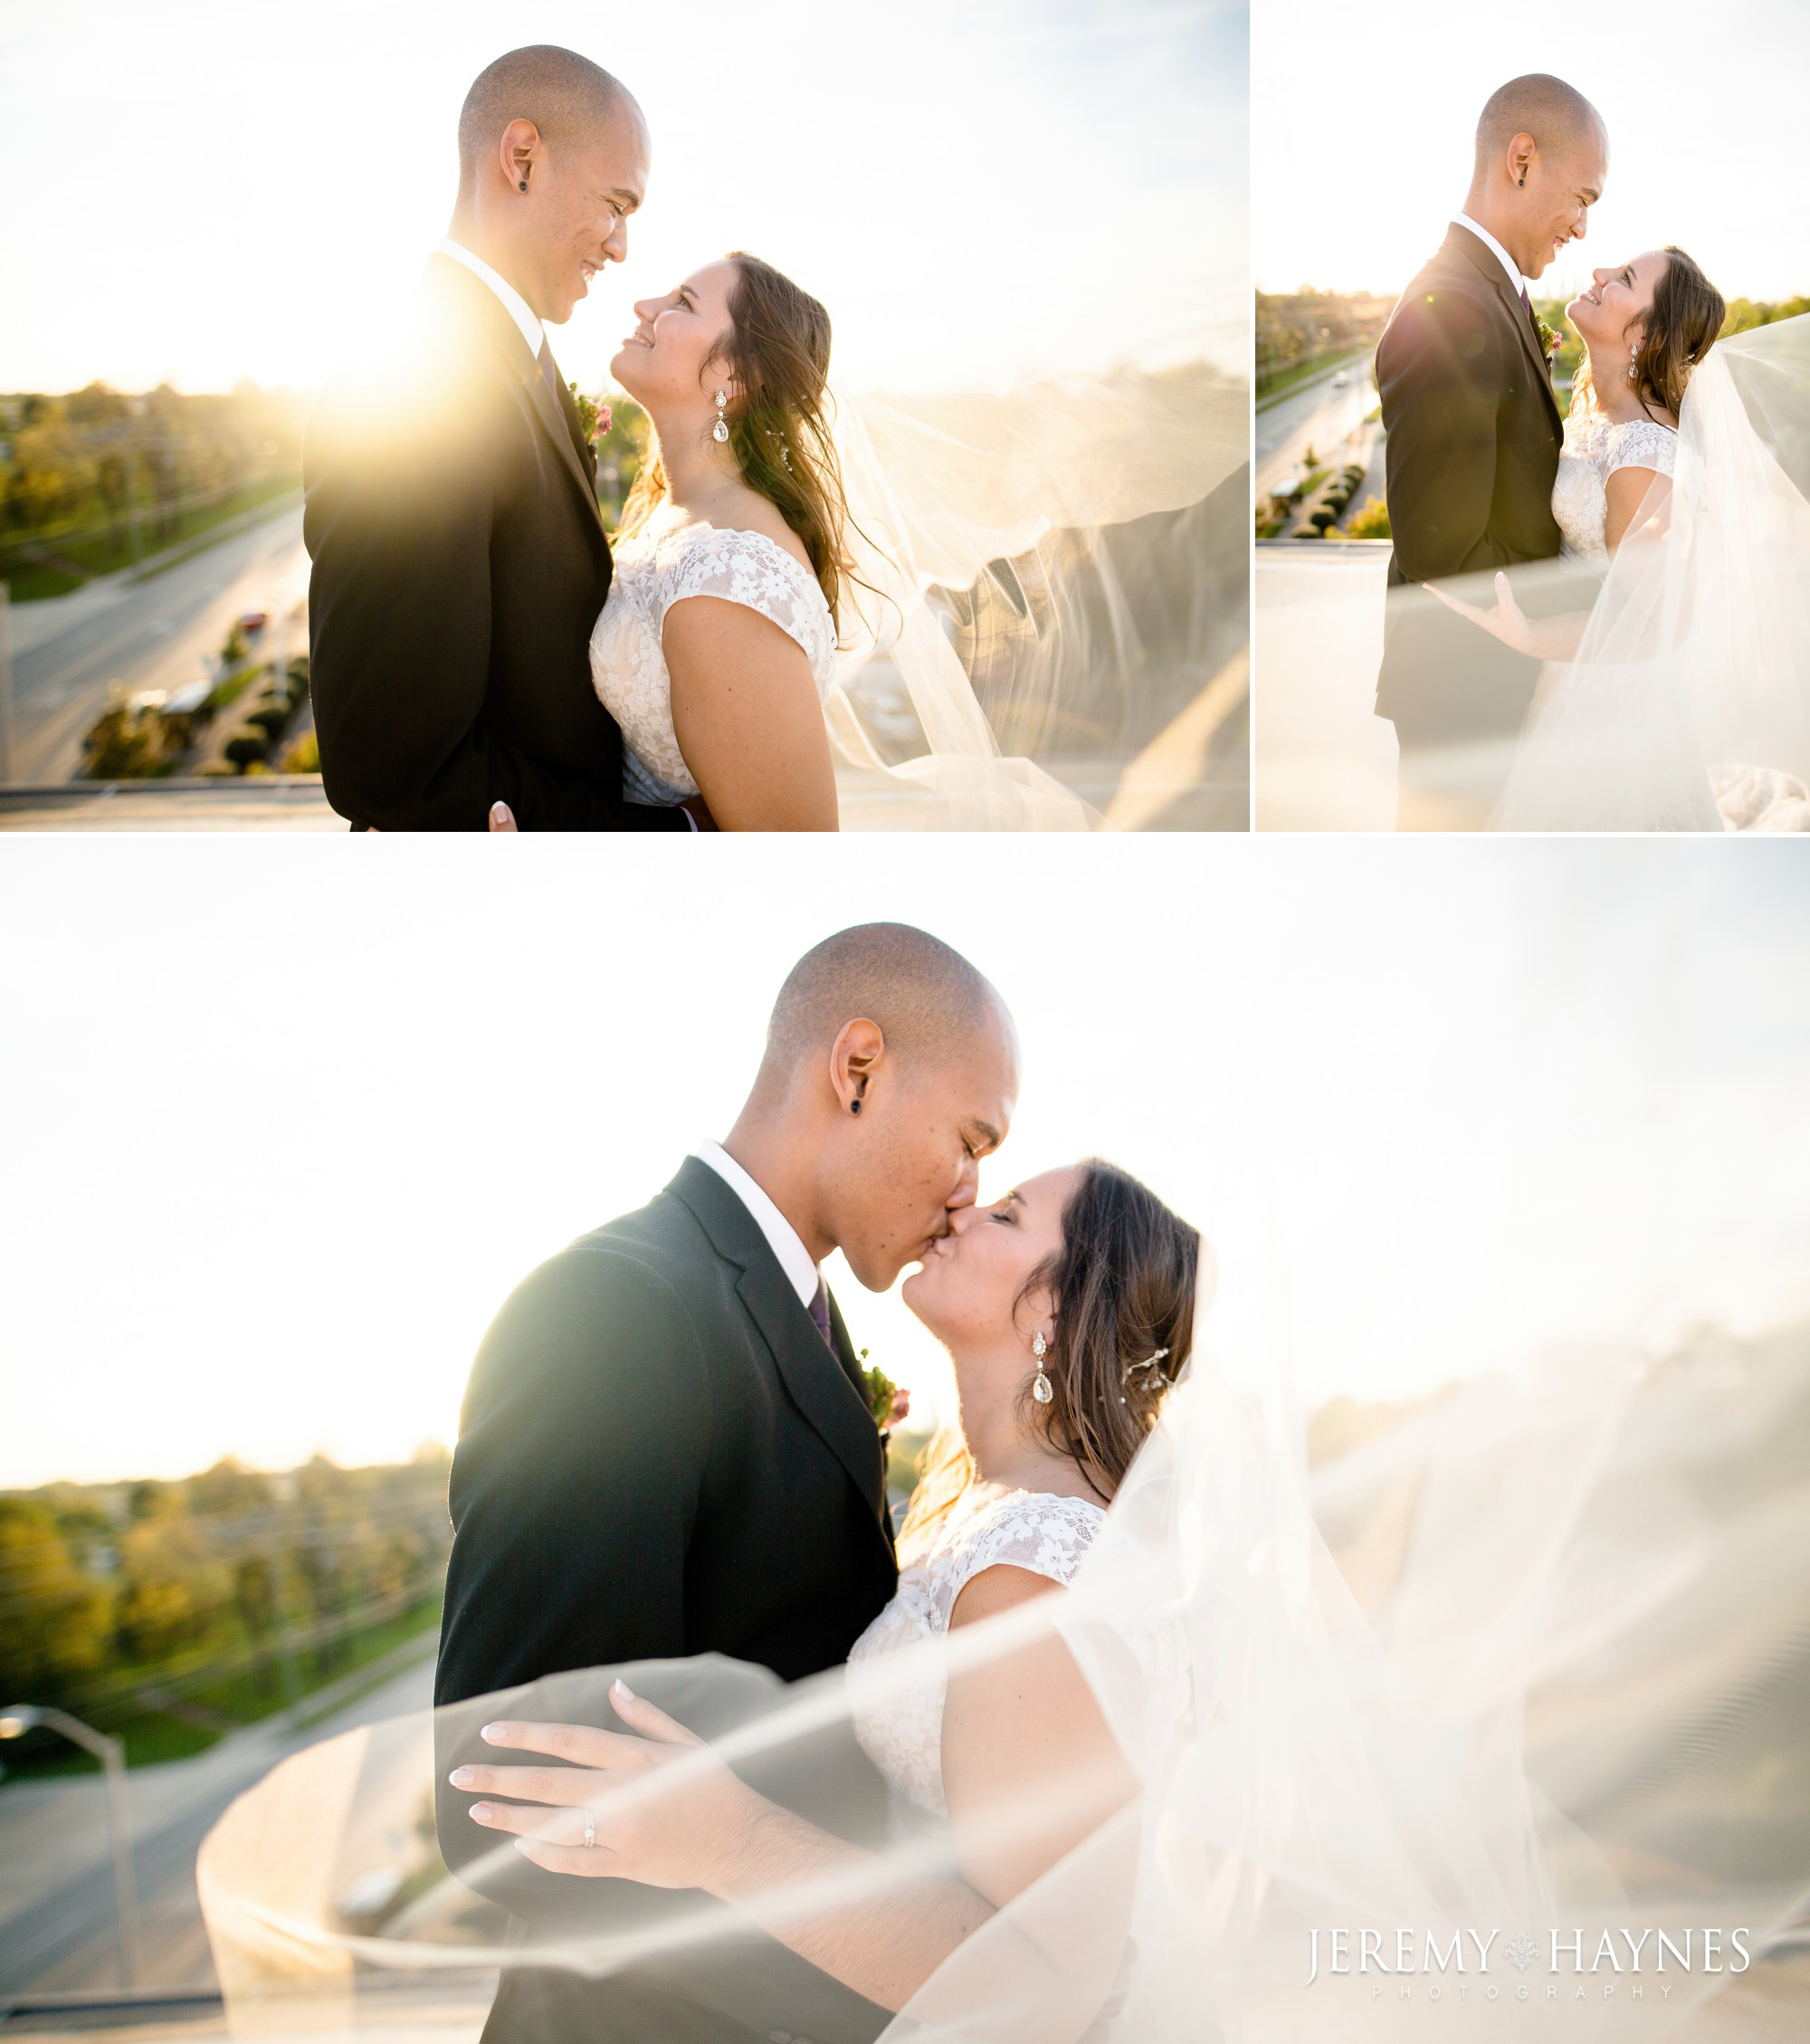 beautiful-couple-neidhammer-wedding.jpg